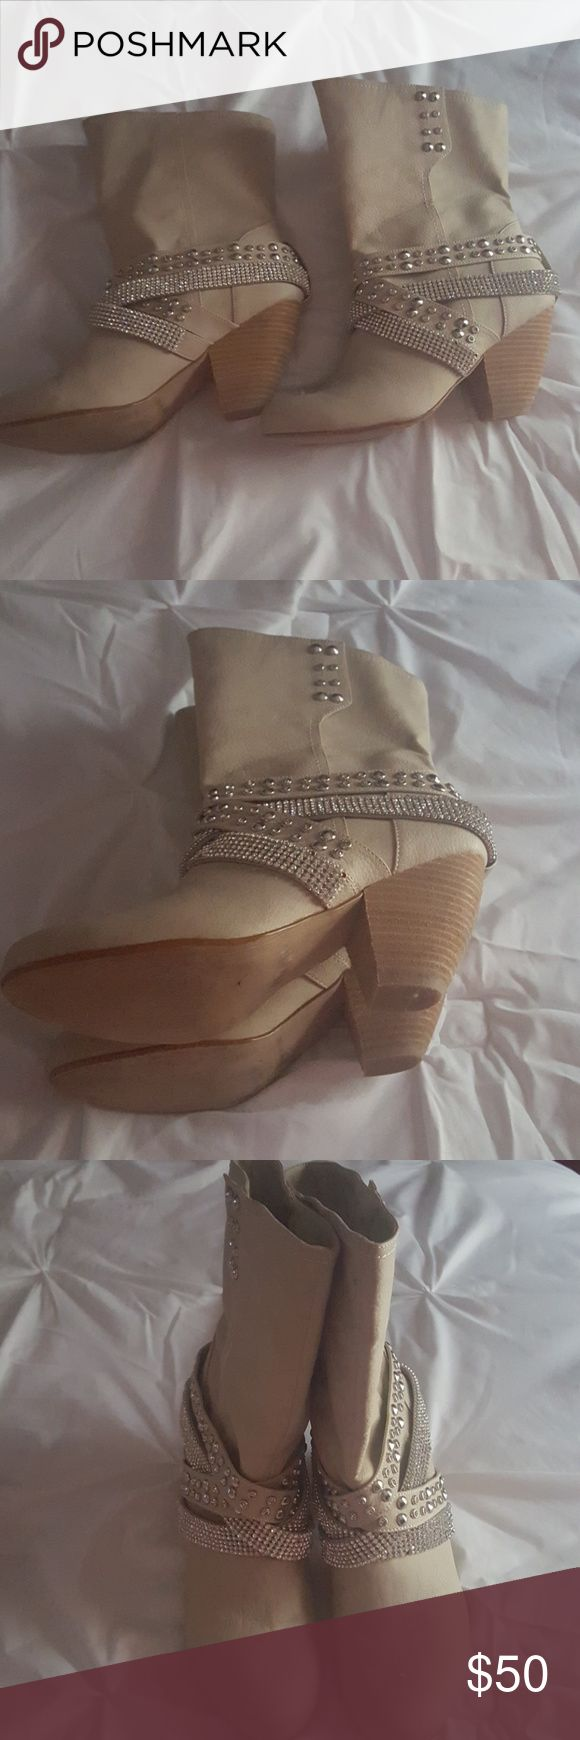 Not Rated EUC Bling Taupe/Creme Faux Leather Boots Size 9.5 Not Rated Shoes